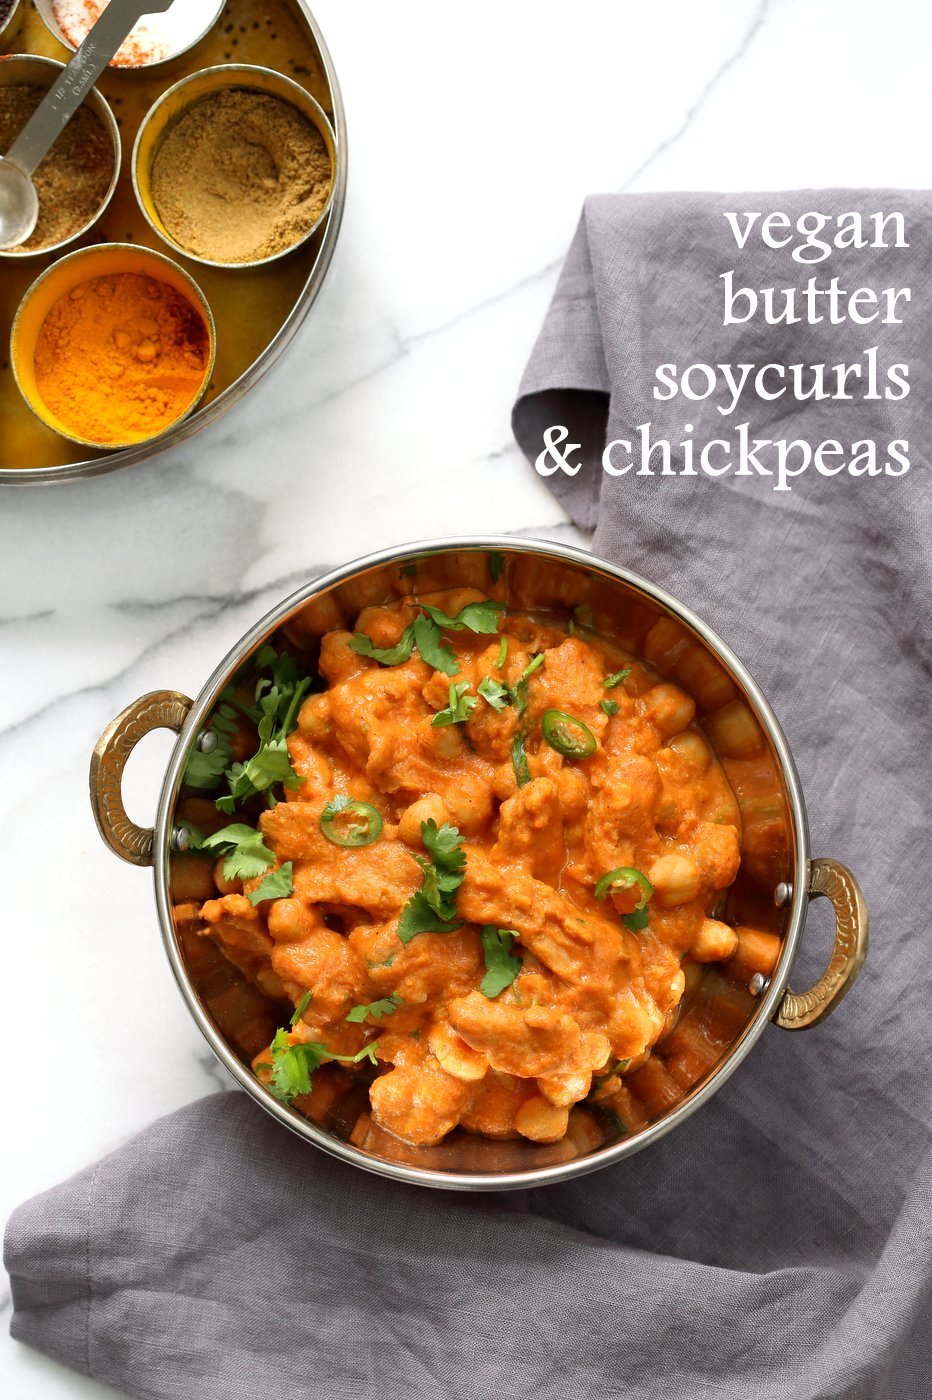 Instant Pot Vegan Butter Chicken with Soycurls and Chickpeas. 15 minute Active time! 1 Pot Creamy Butter Soy Curls. Use all chickpeas for soy-free. Vegan Gluten-free Recipe. Nut-free option | VeganRicha.com